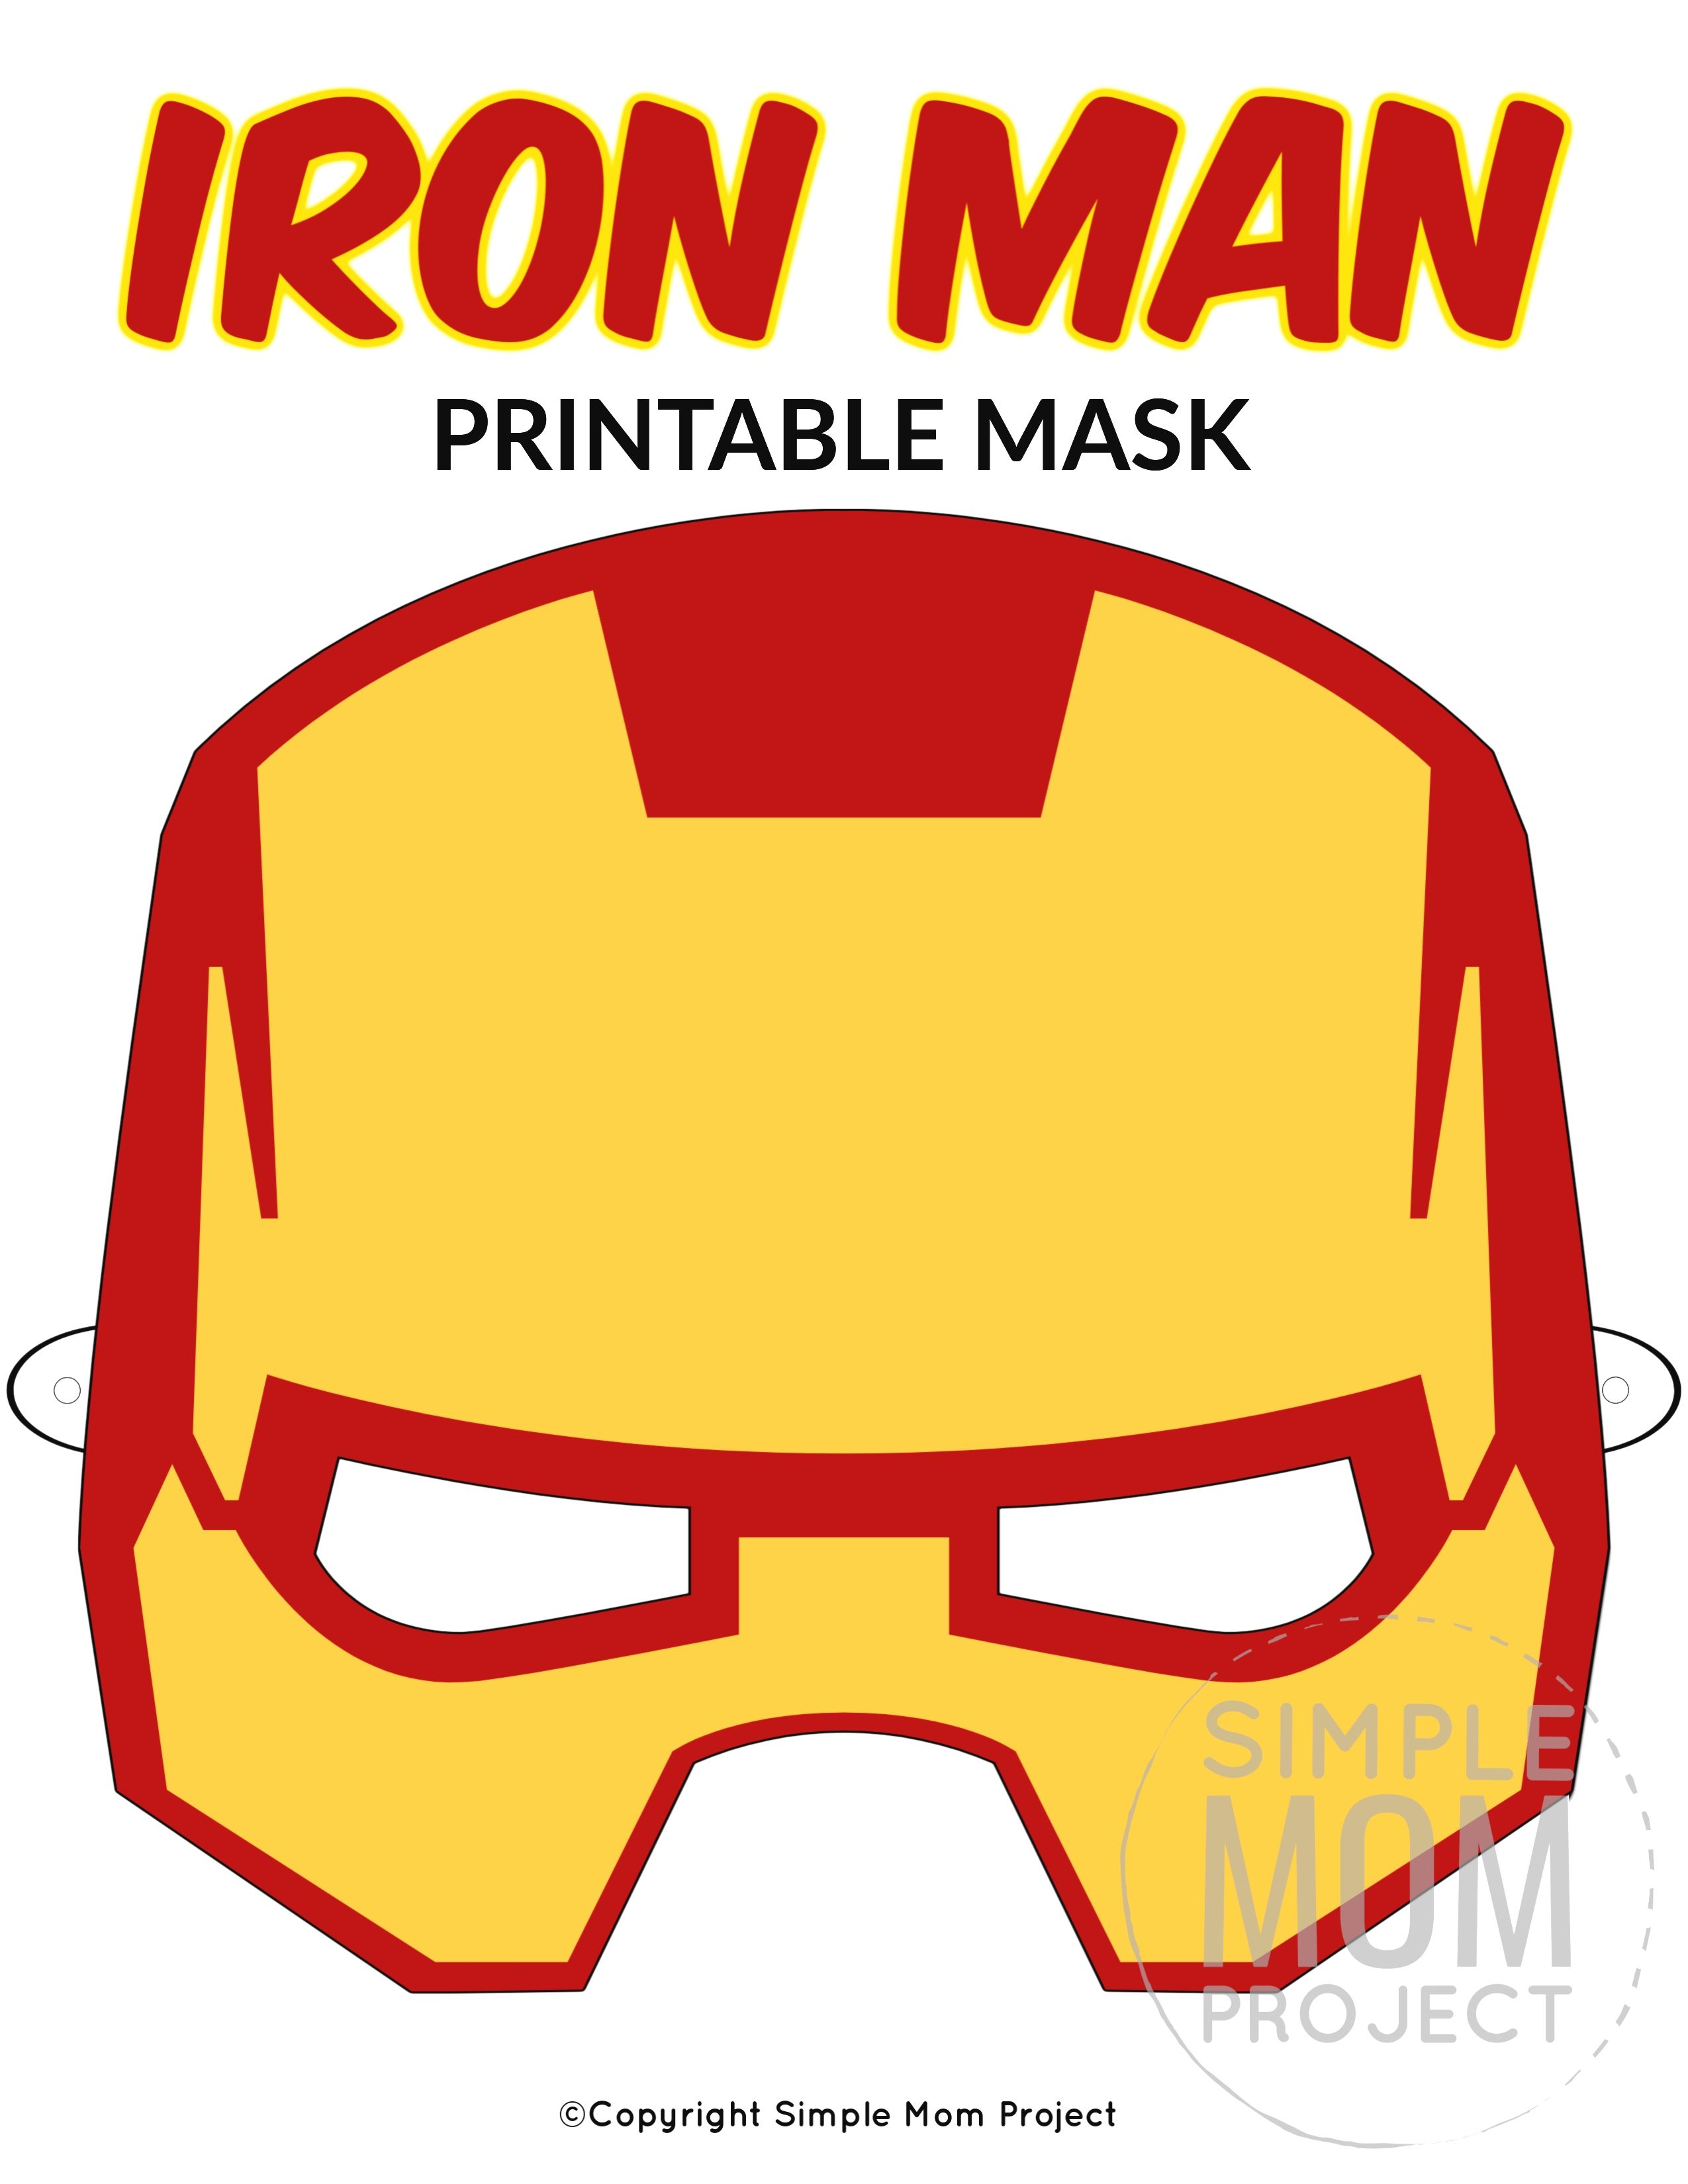 Pin By Krupenchenko Yaroslav On Parenting In 2020 Iron Man Iron Man Mask Mask For Kids